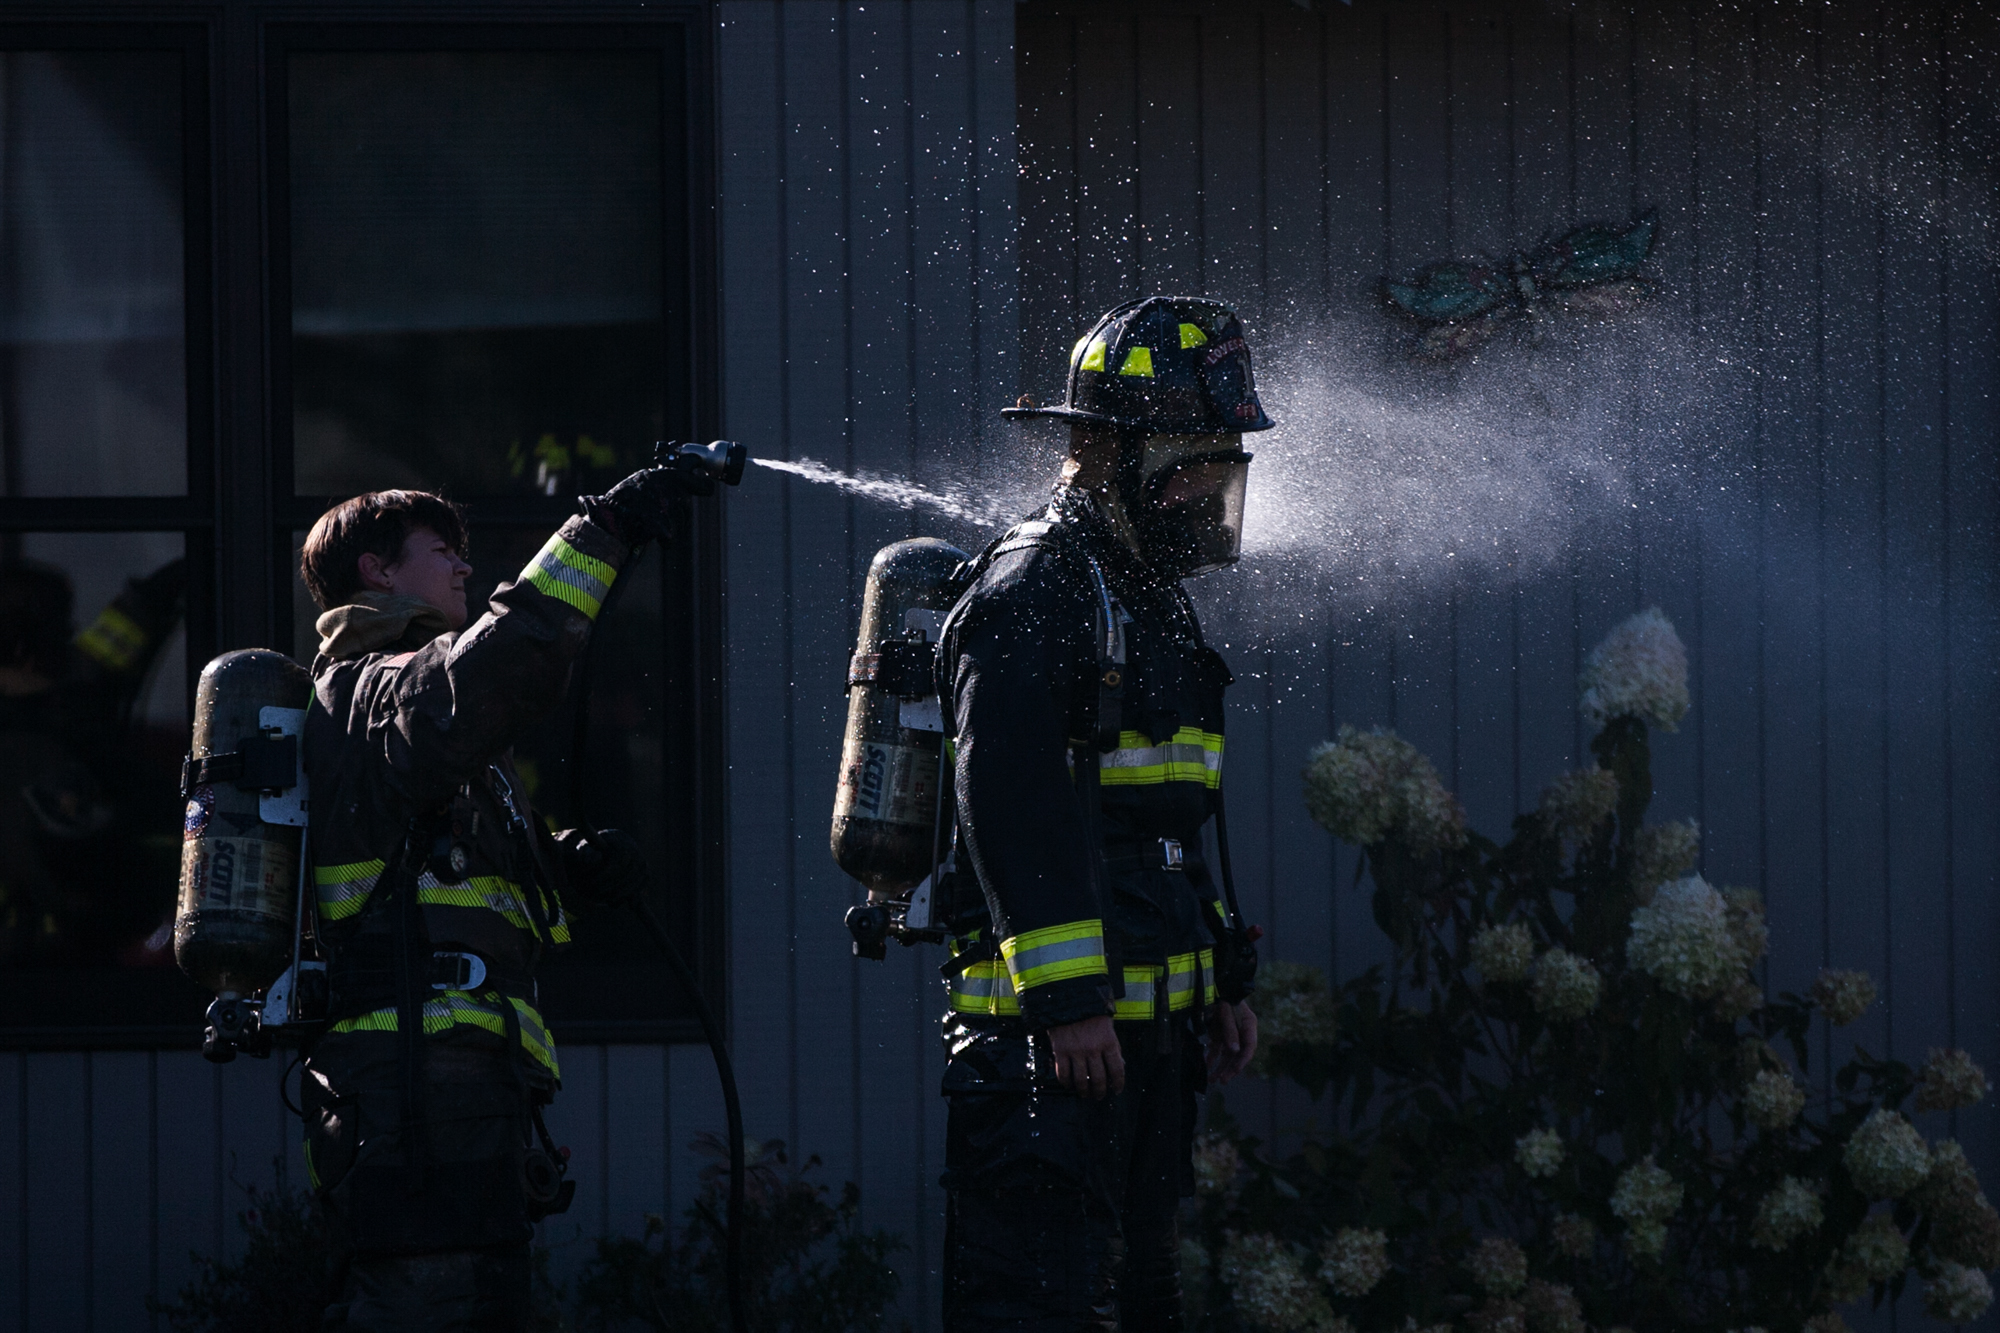 Fire departments from Loves Park rinse of equipment after exposure to gas and loose housing insulation at the scene of a house fire on Tuesday, Sept. 11, 2018, at the 4300 block of Kingsbury Drive in Loves Park. [SCOTT P. YATES/RRSTAR.COM STAFF]